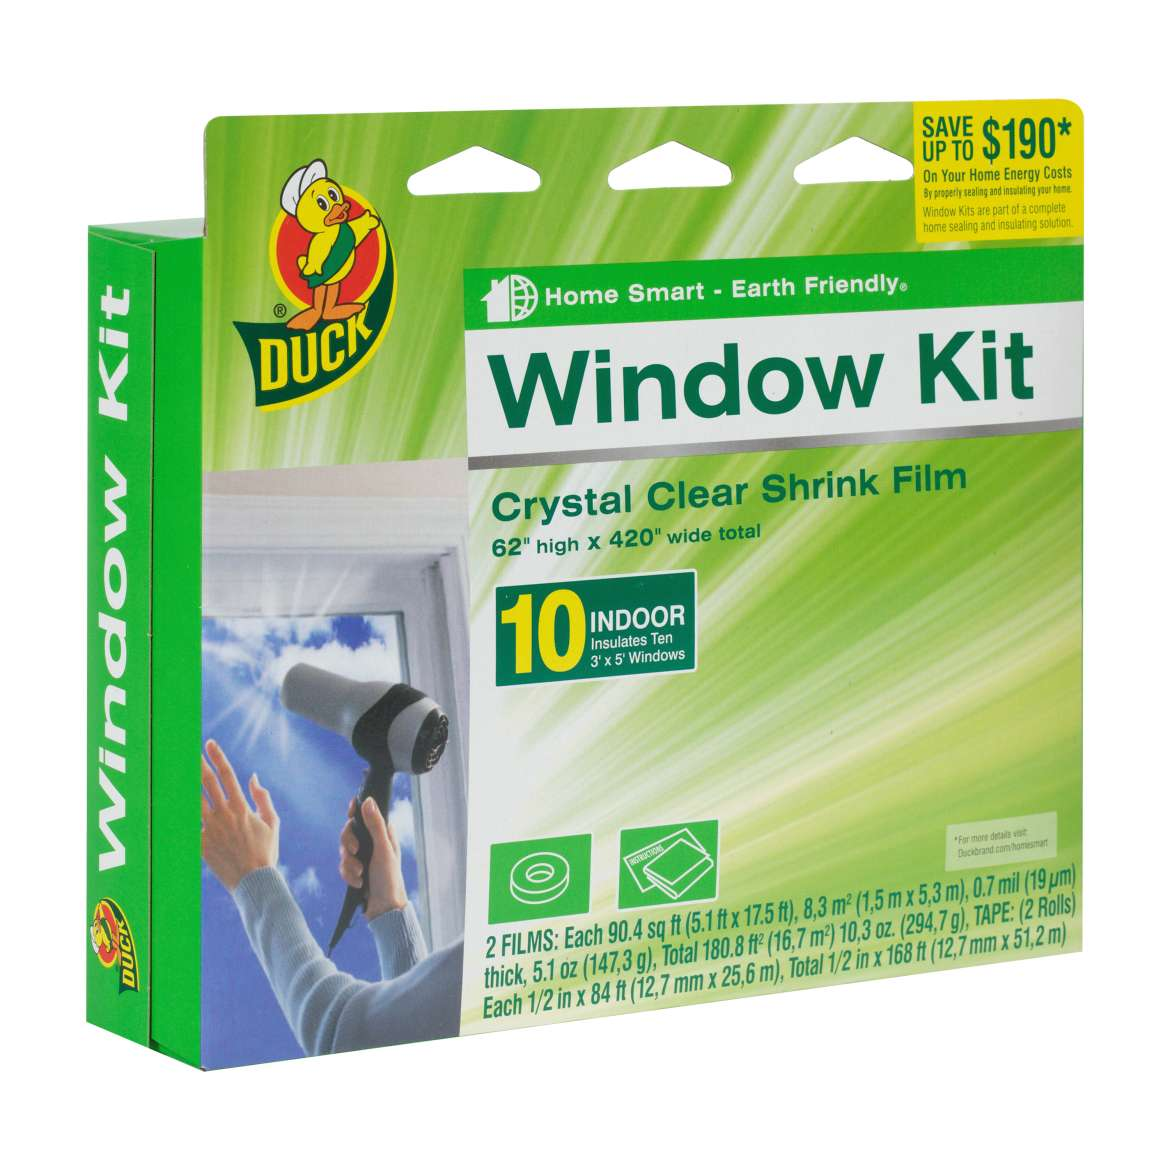 Duck Brand Shrink Film Indoor Window Kit, 10 pack, Clear Image 1 of 3